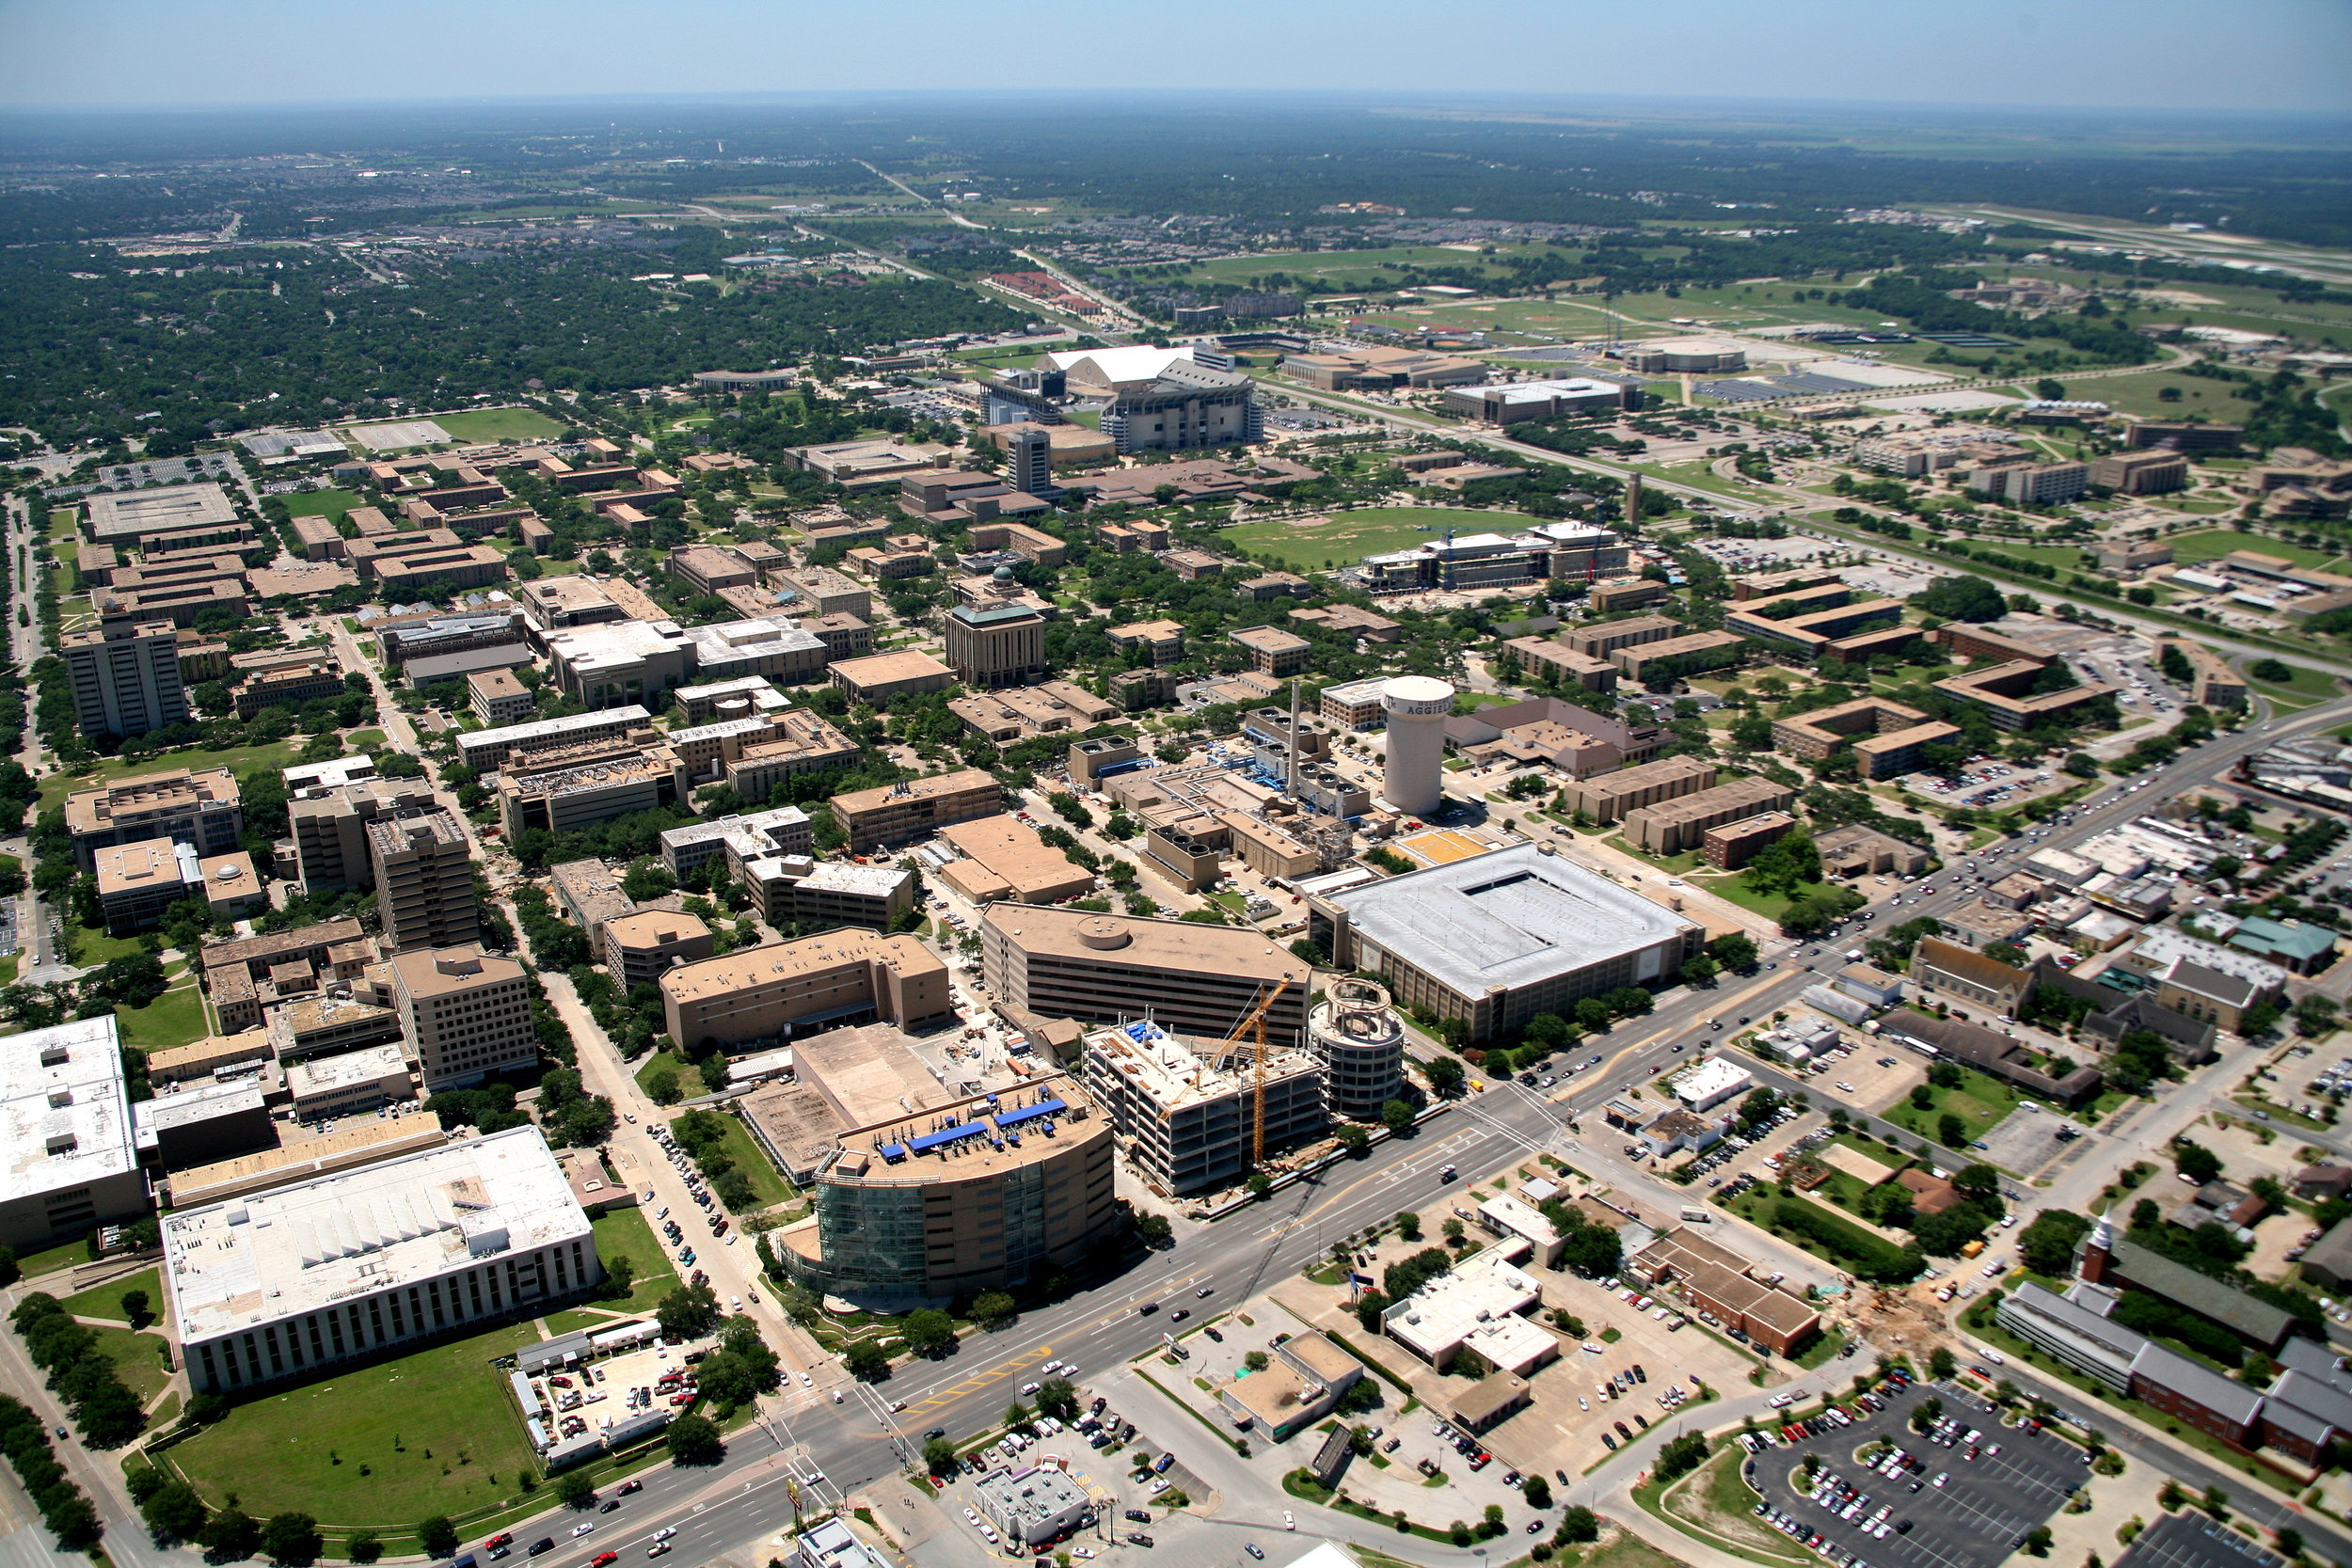 Texas A&M, College Station, Texas - College Station Aerial Photographer - Aerial Drone Image - Aerial Drone Video - Bryan, TX